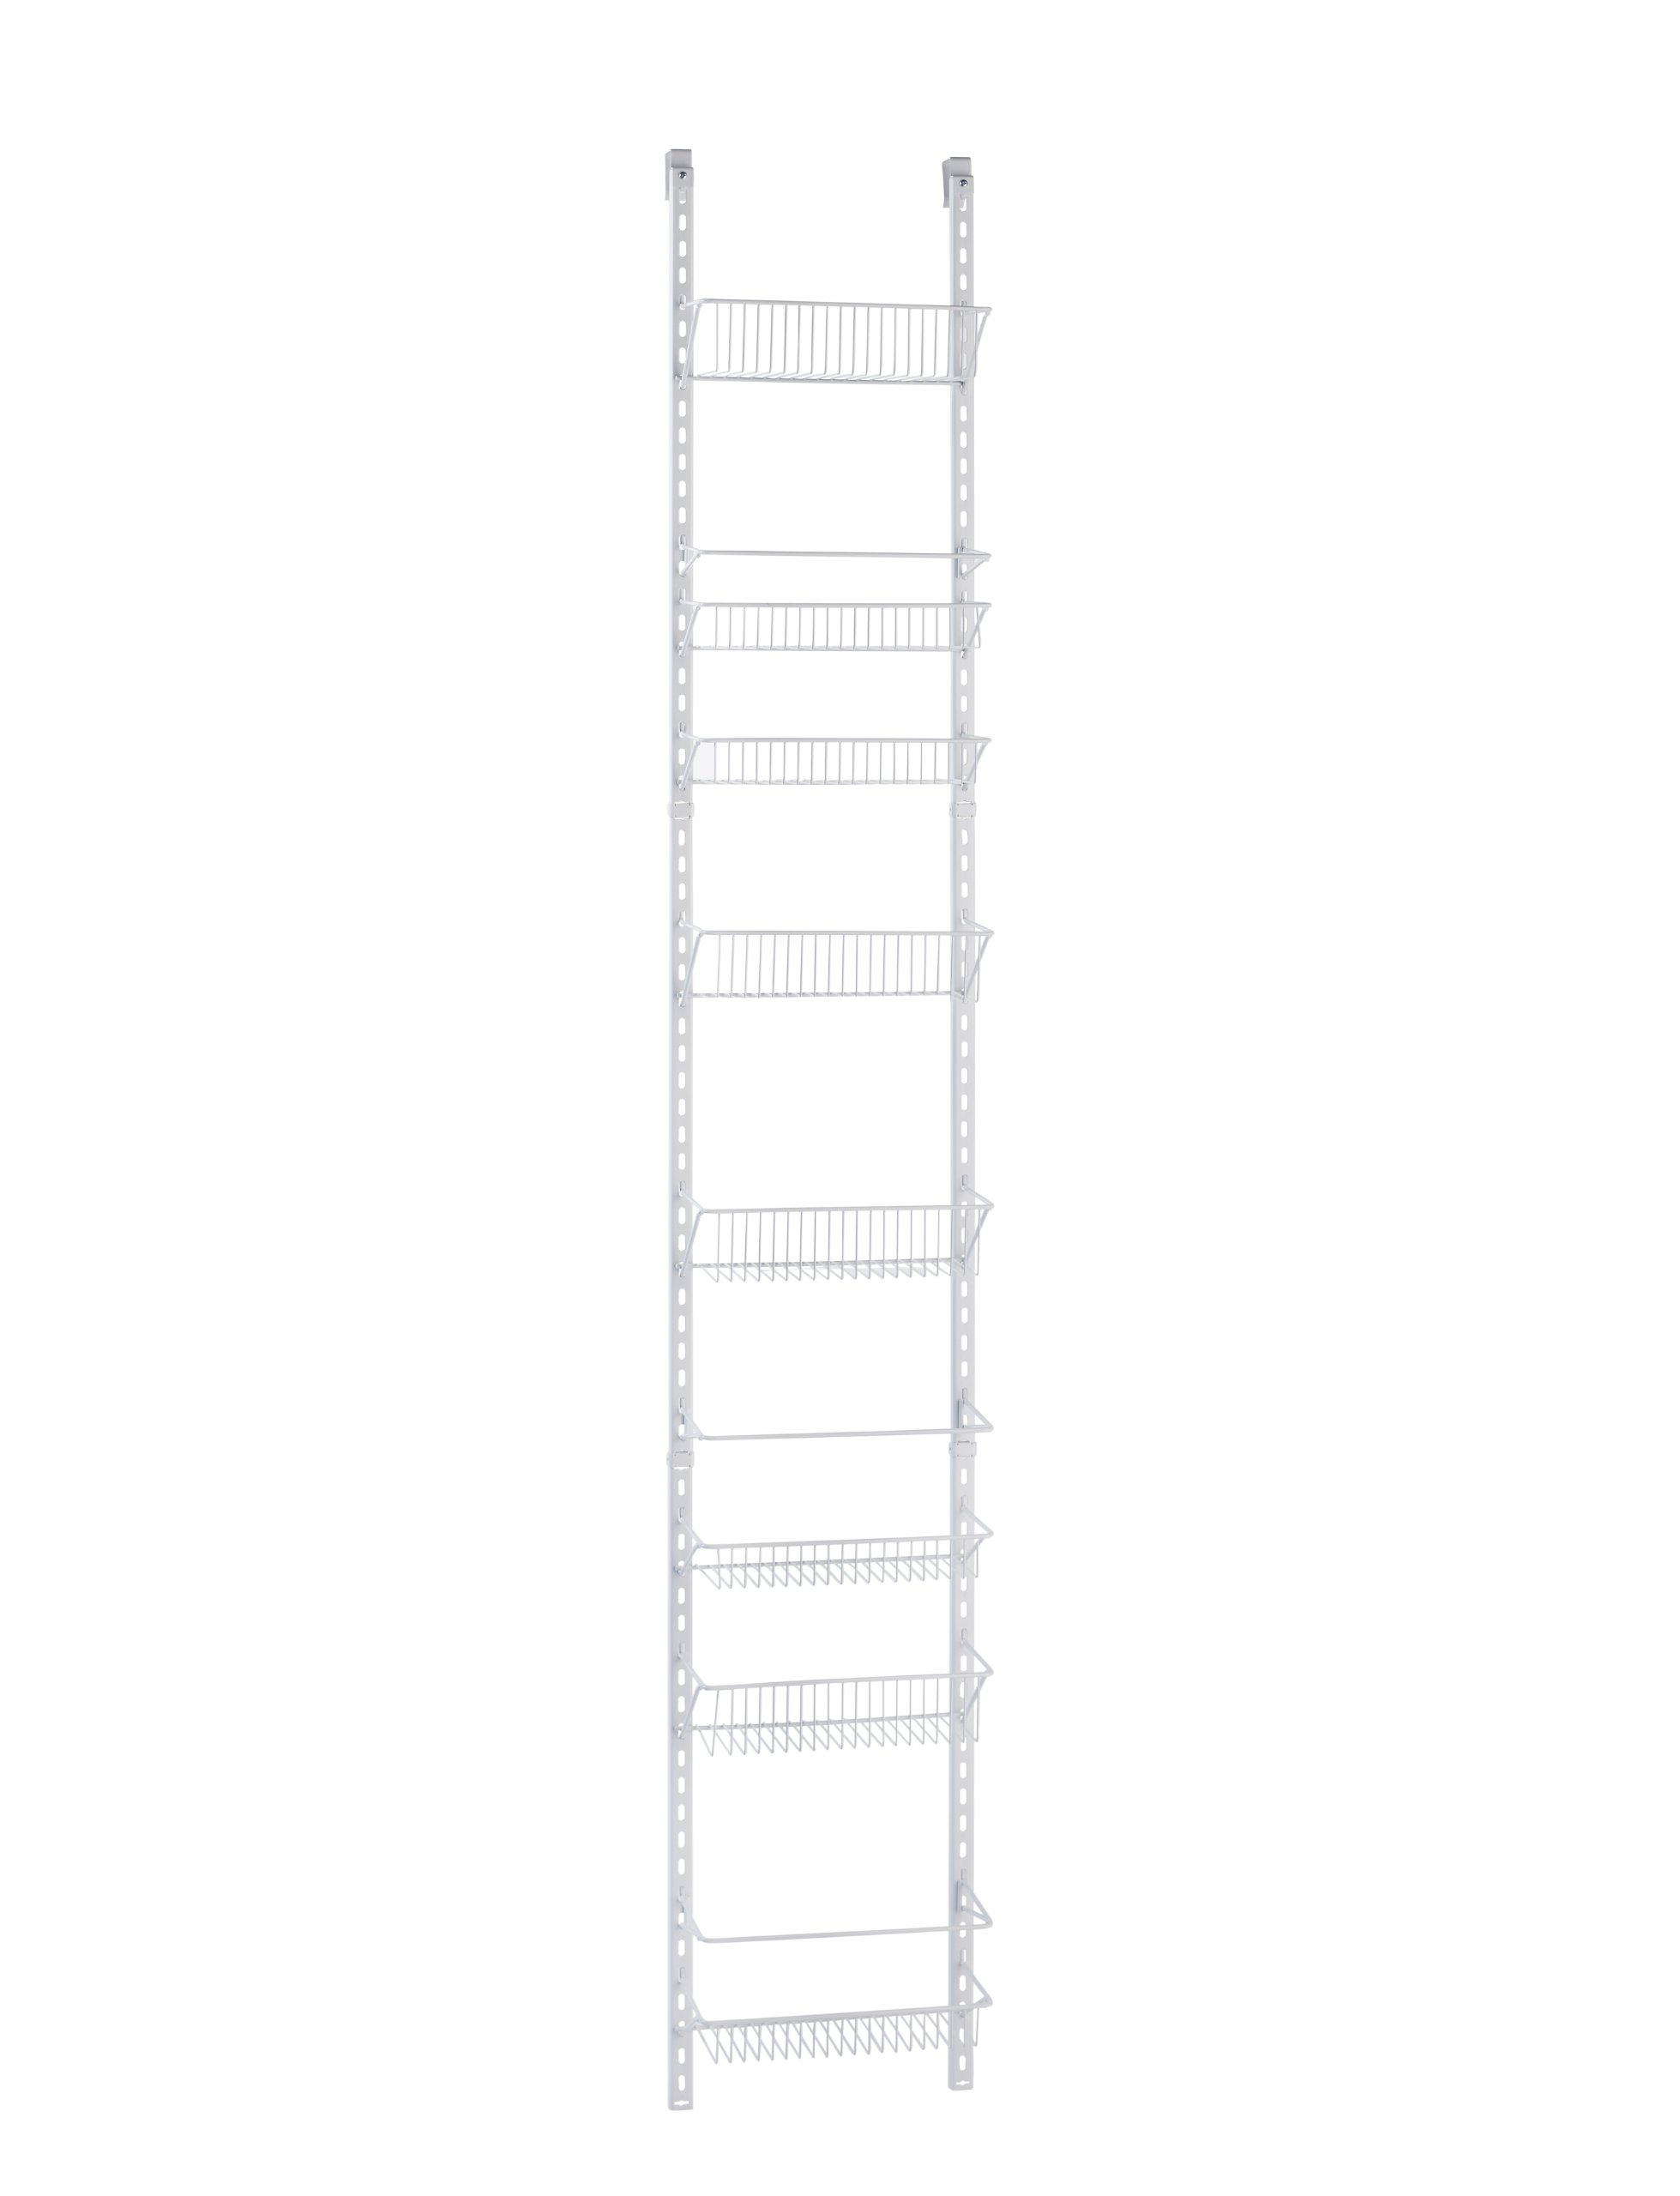 ClosetMaid 1231 Adjustable 8-Tier Wall and Door Rack, 77-Inch Height X 12-Inch Wide